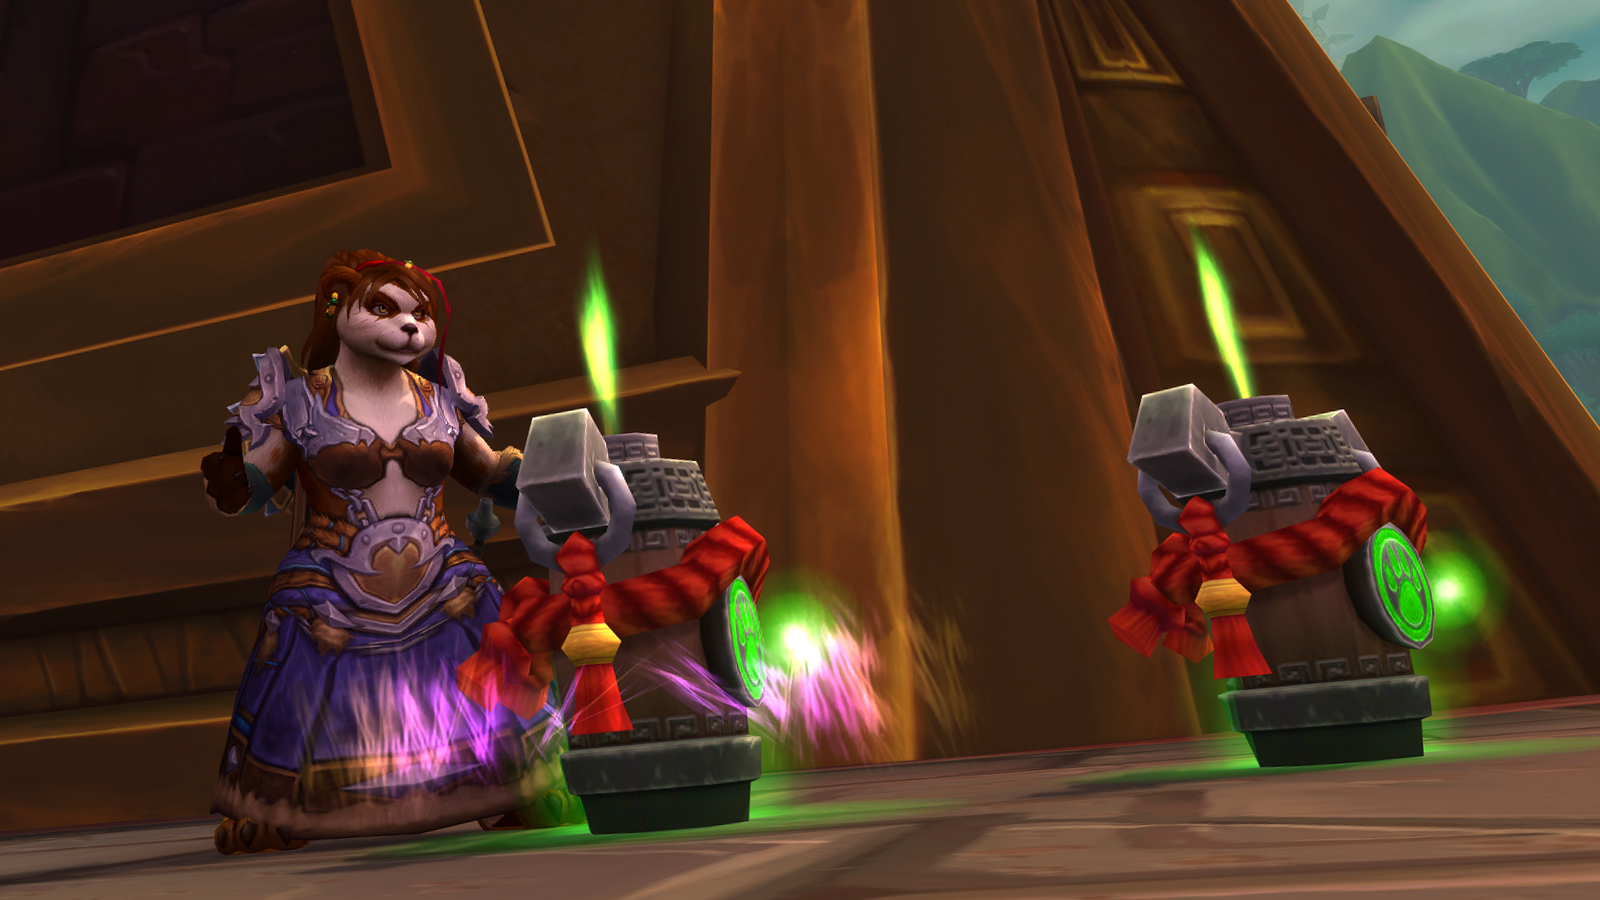 Pandaren Shaman with Totems in Zandalar